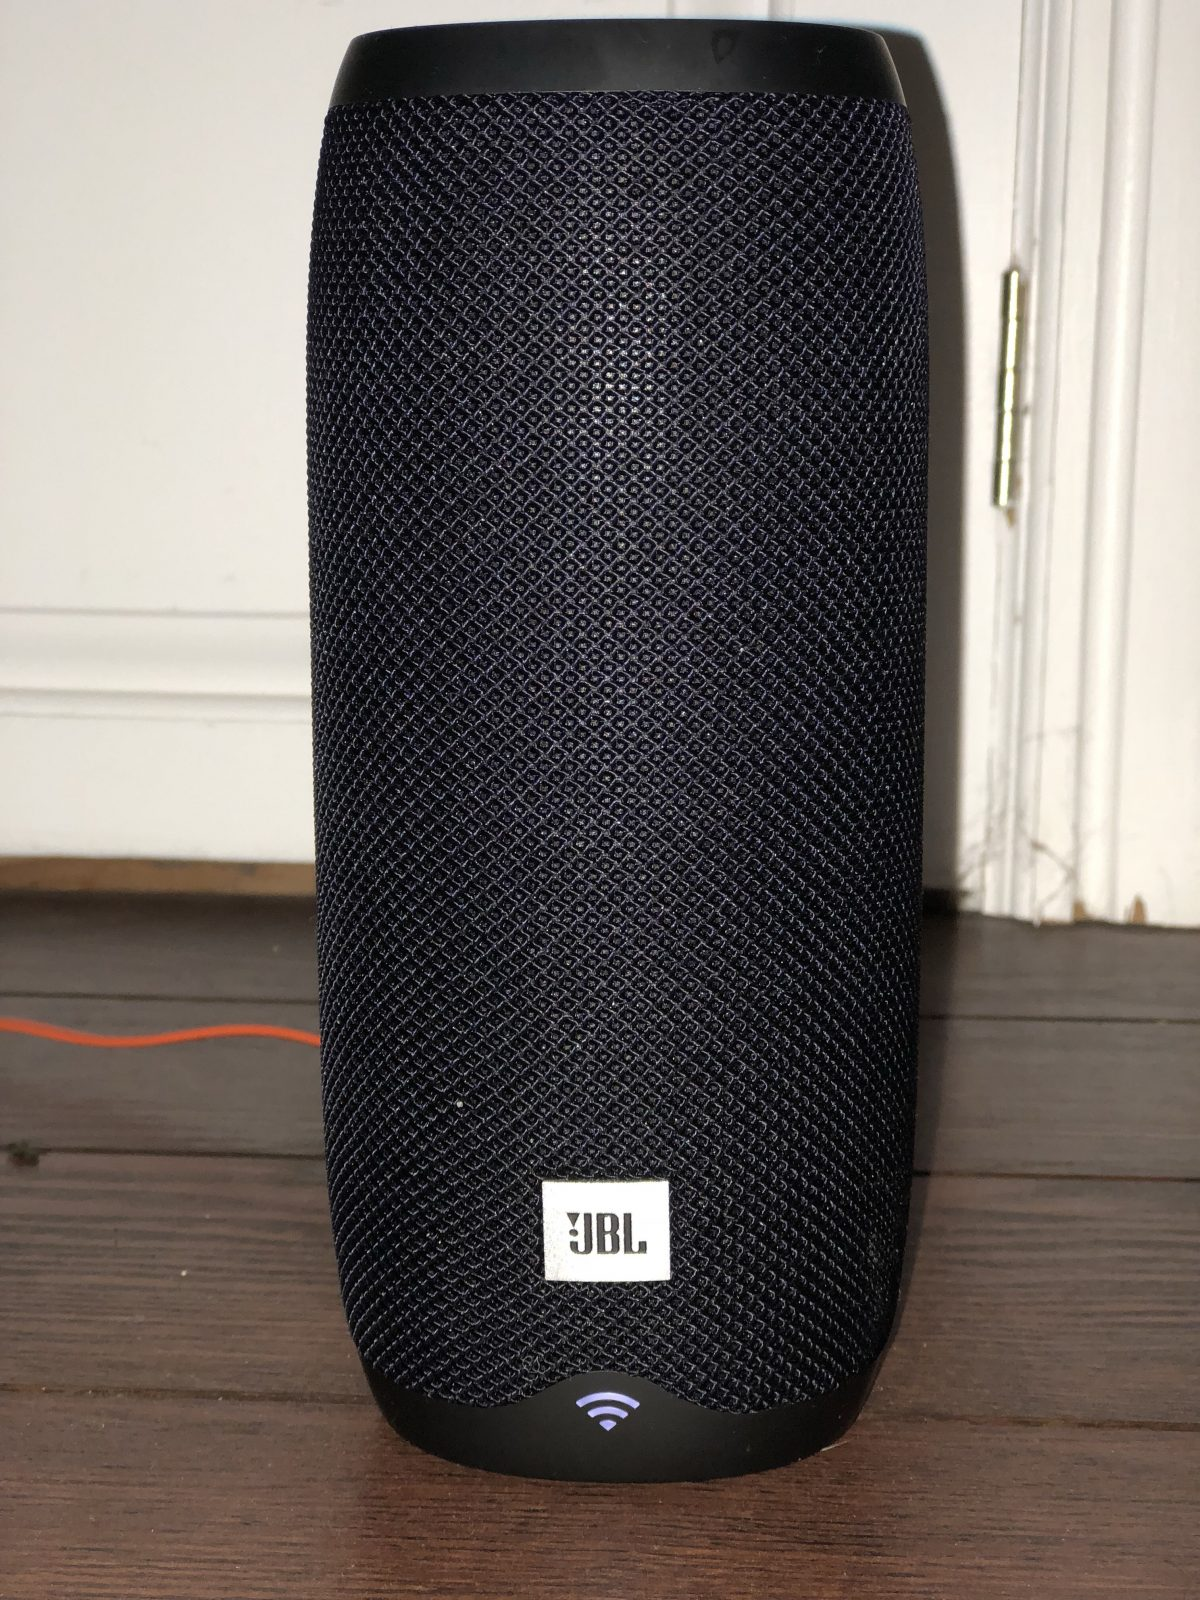 JBL Link 20 Review: The Power of Google Meets Portability